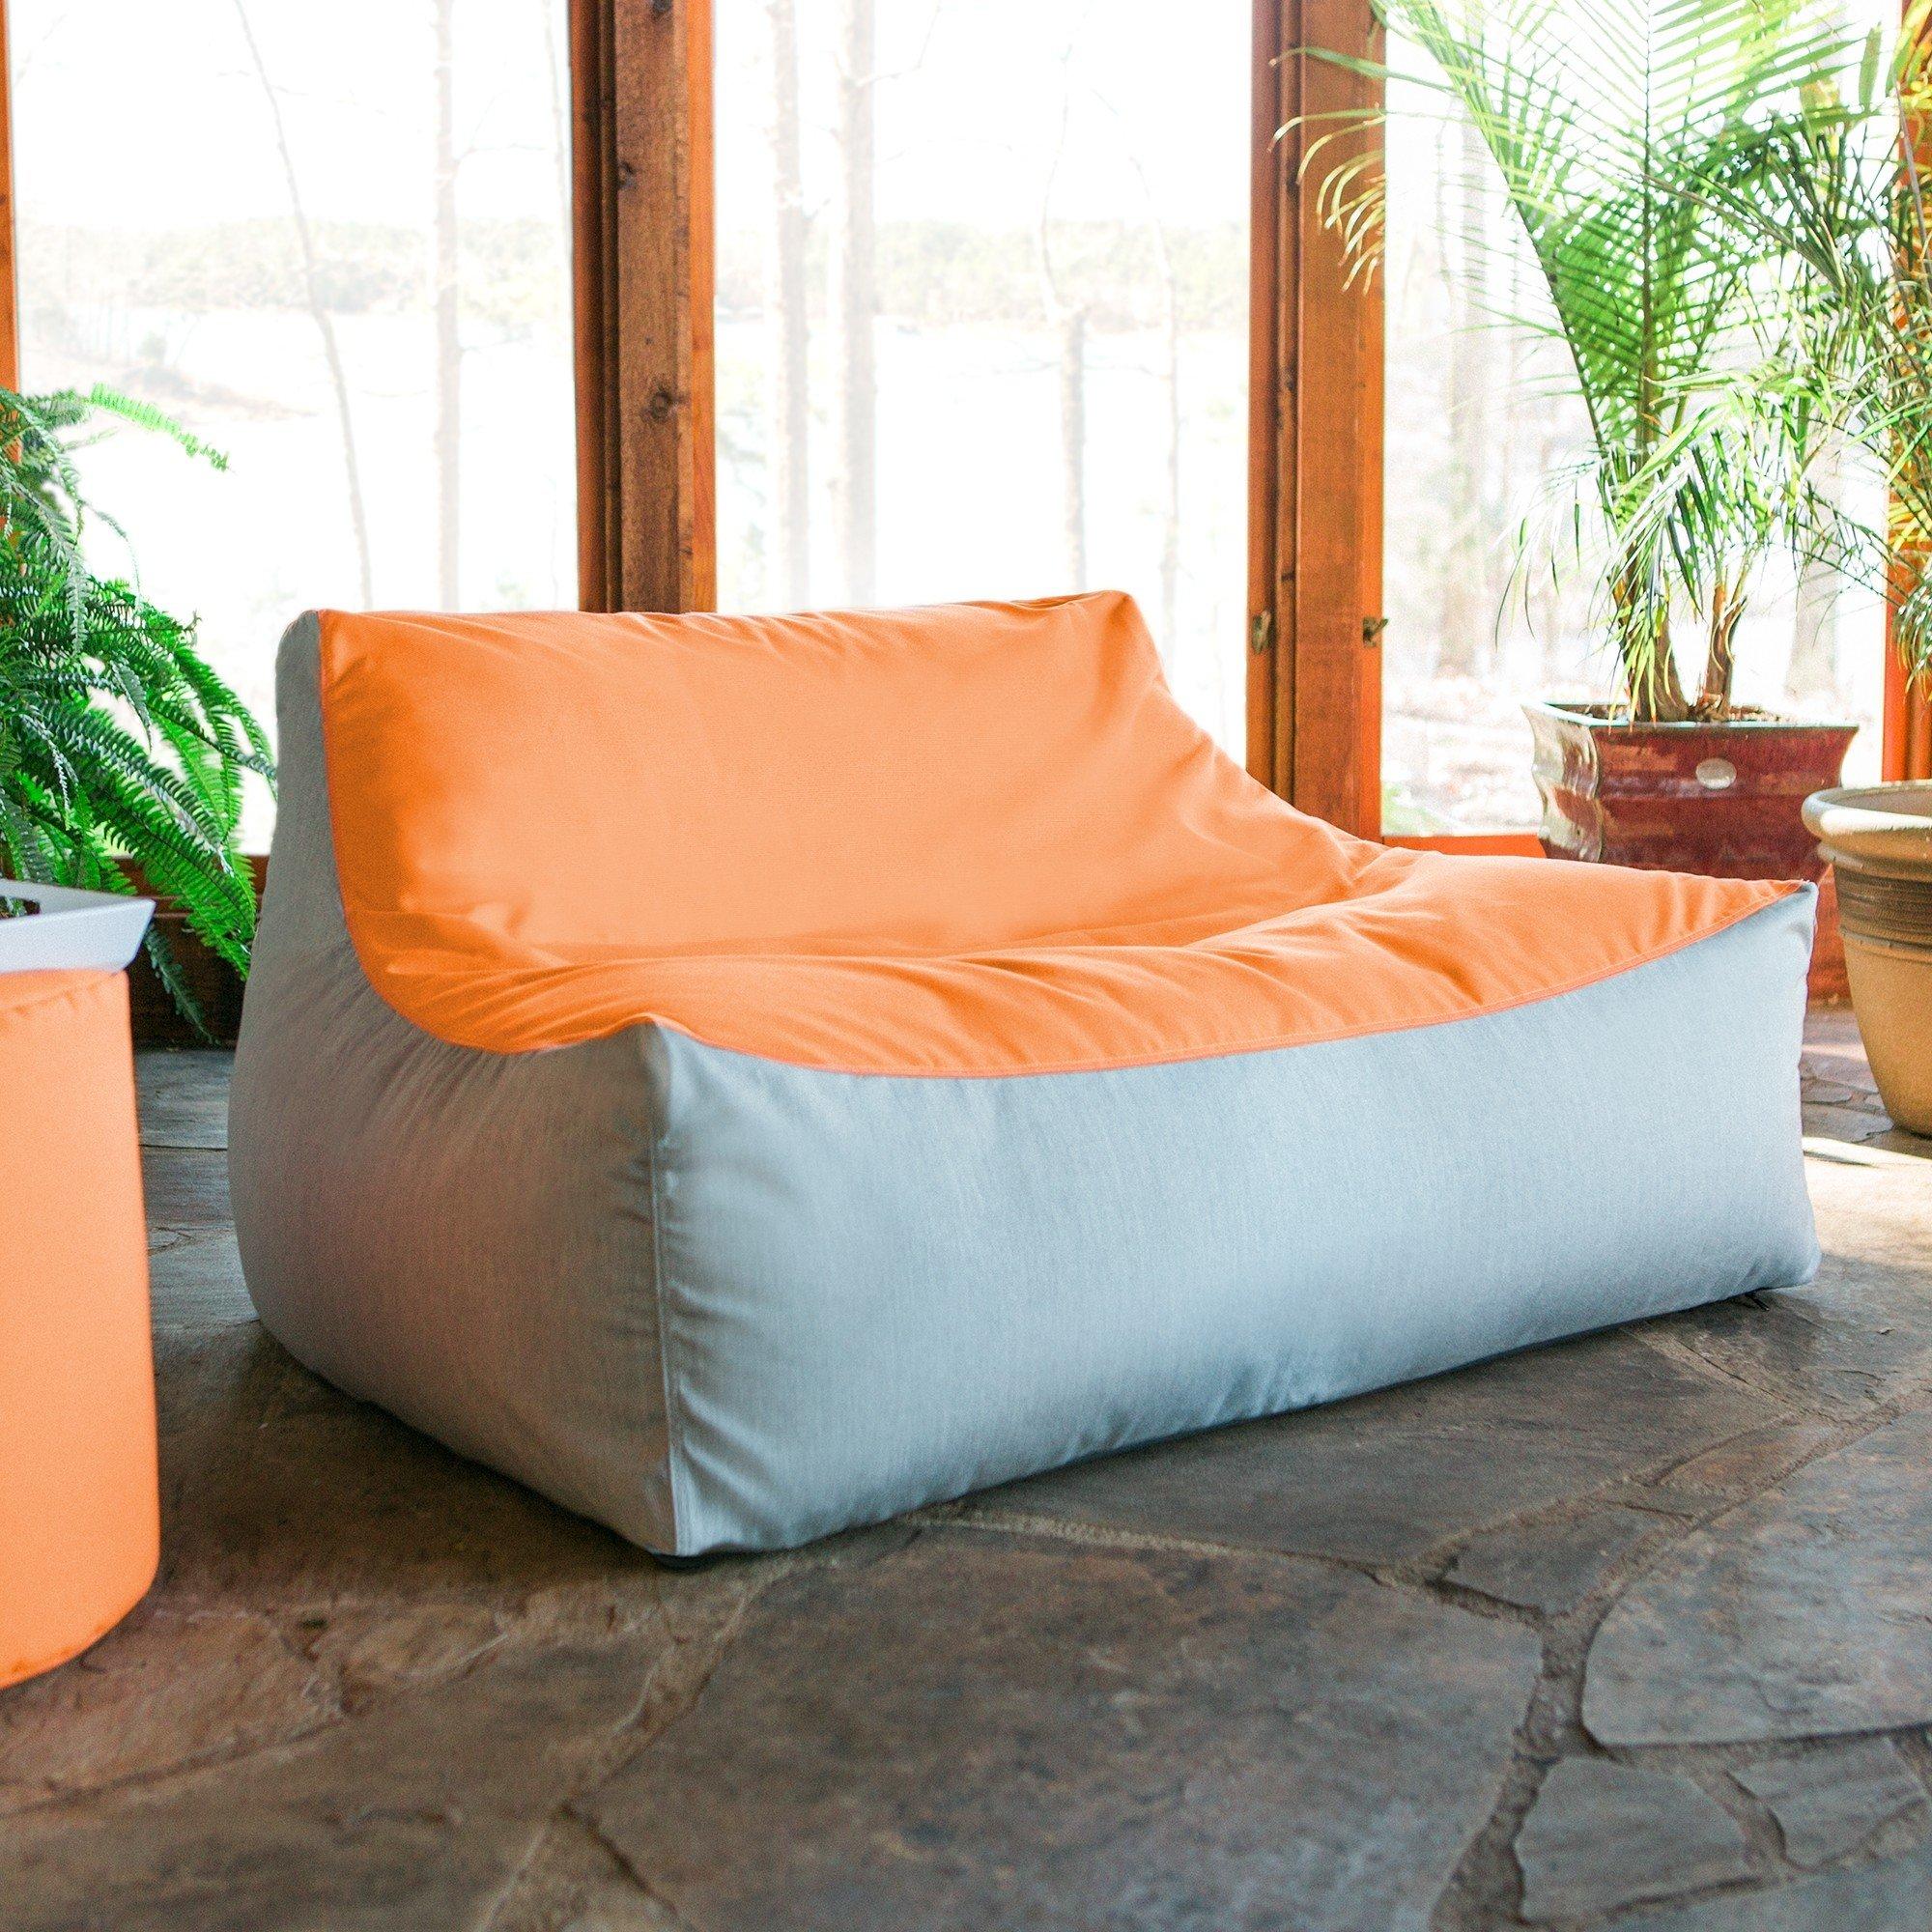 Remarkable Lavista Outdoor Bean Bag Loveseat Tangerine Granite Ocoug Best Dining Table And Chair Ideas Images Ocougorg